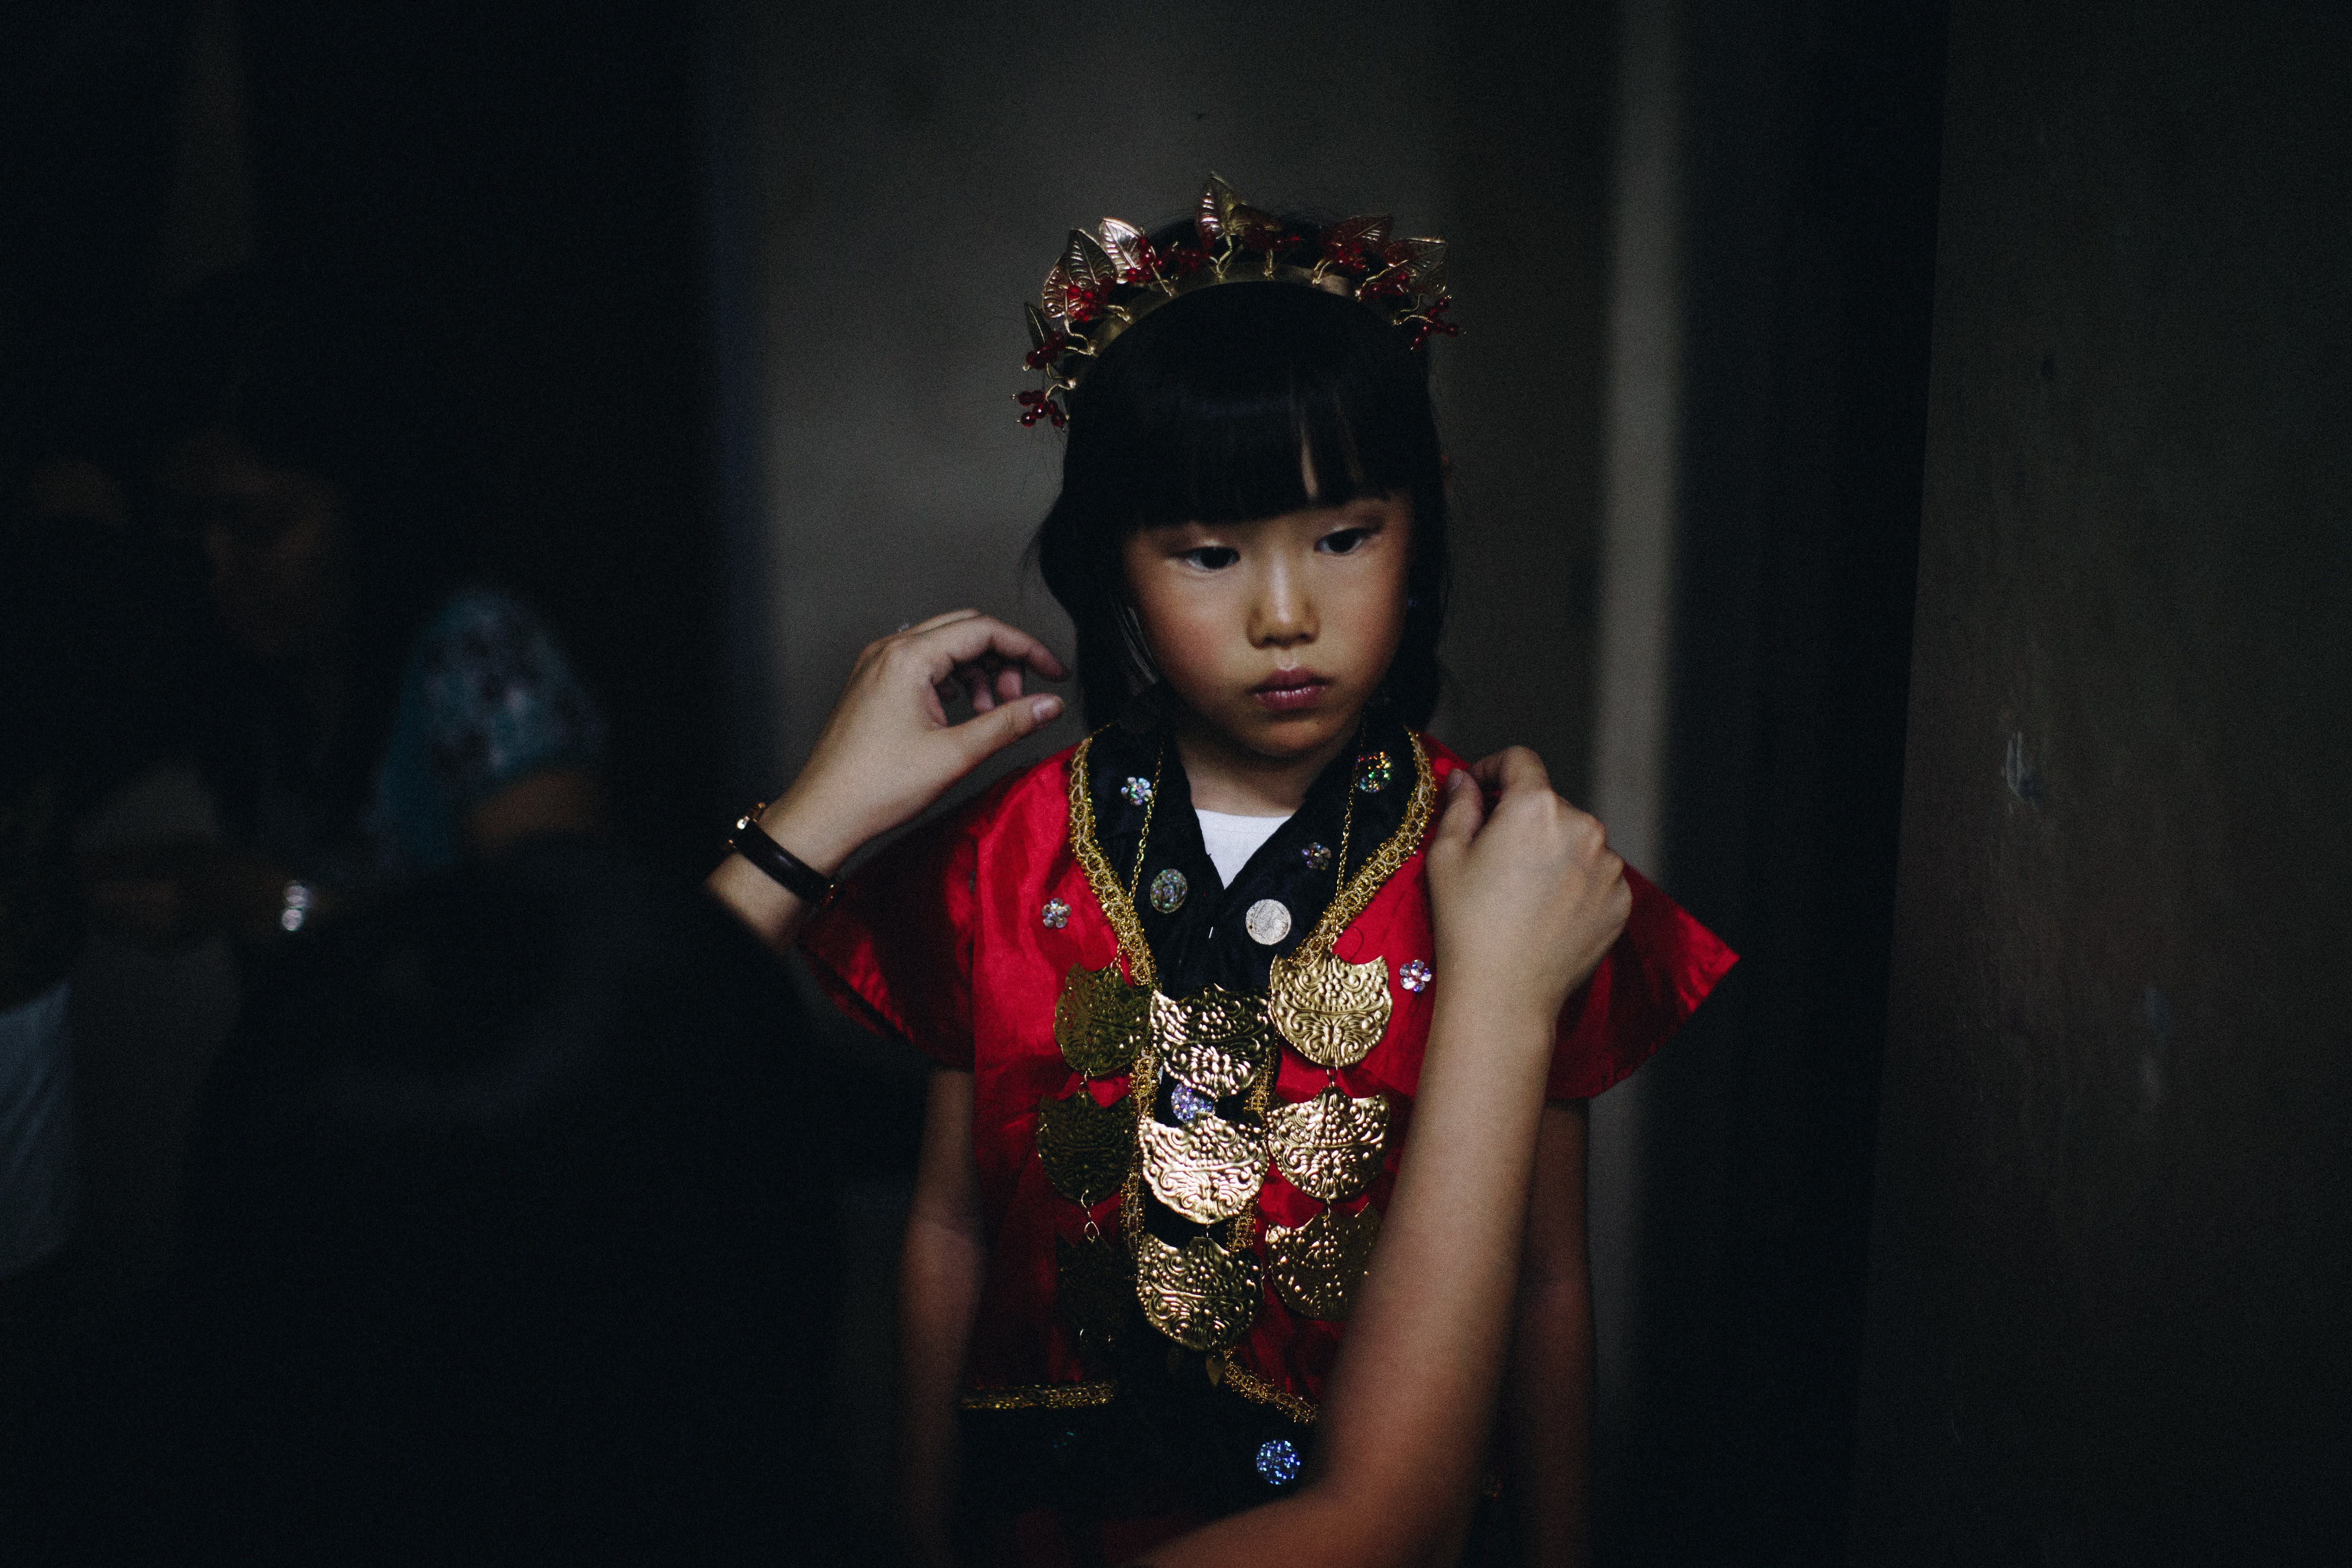 A person styles a child in a headdress and red traditional formal clothing